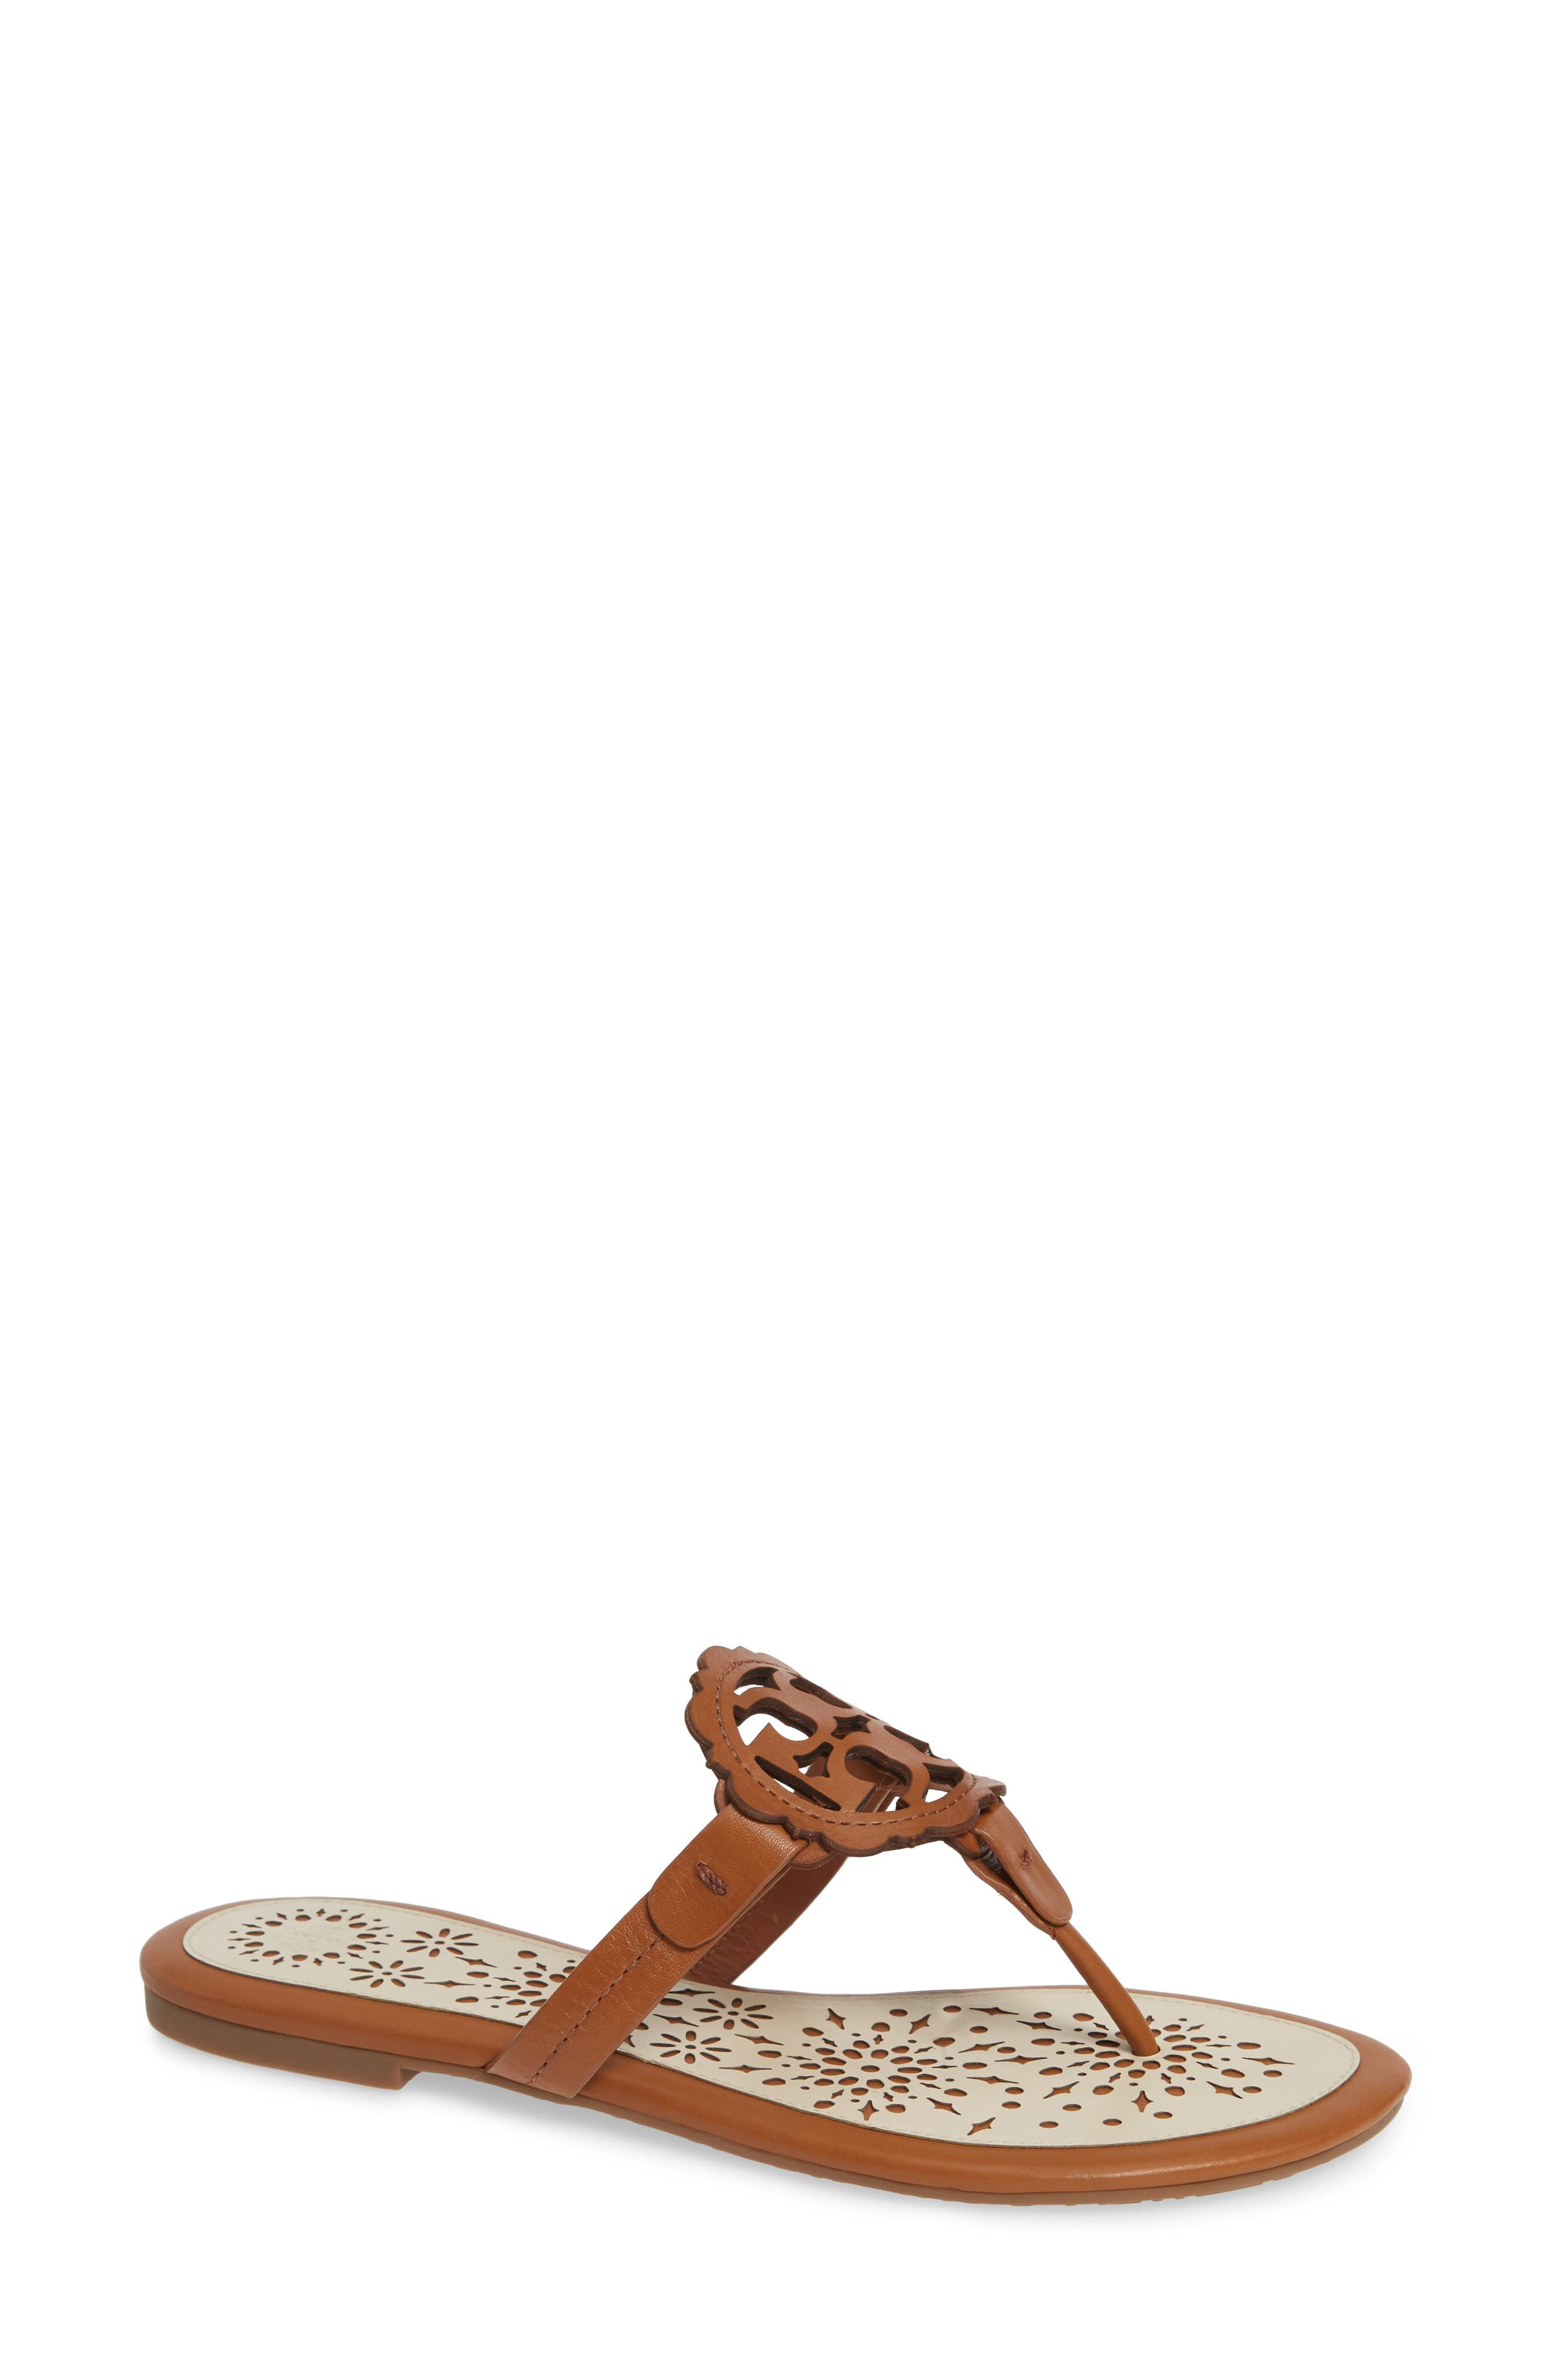 Women'S Miller Scallop Leather Thong Sandals in Tan/ New Cream